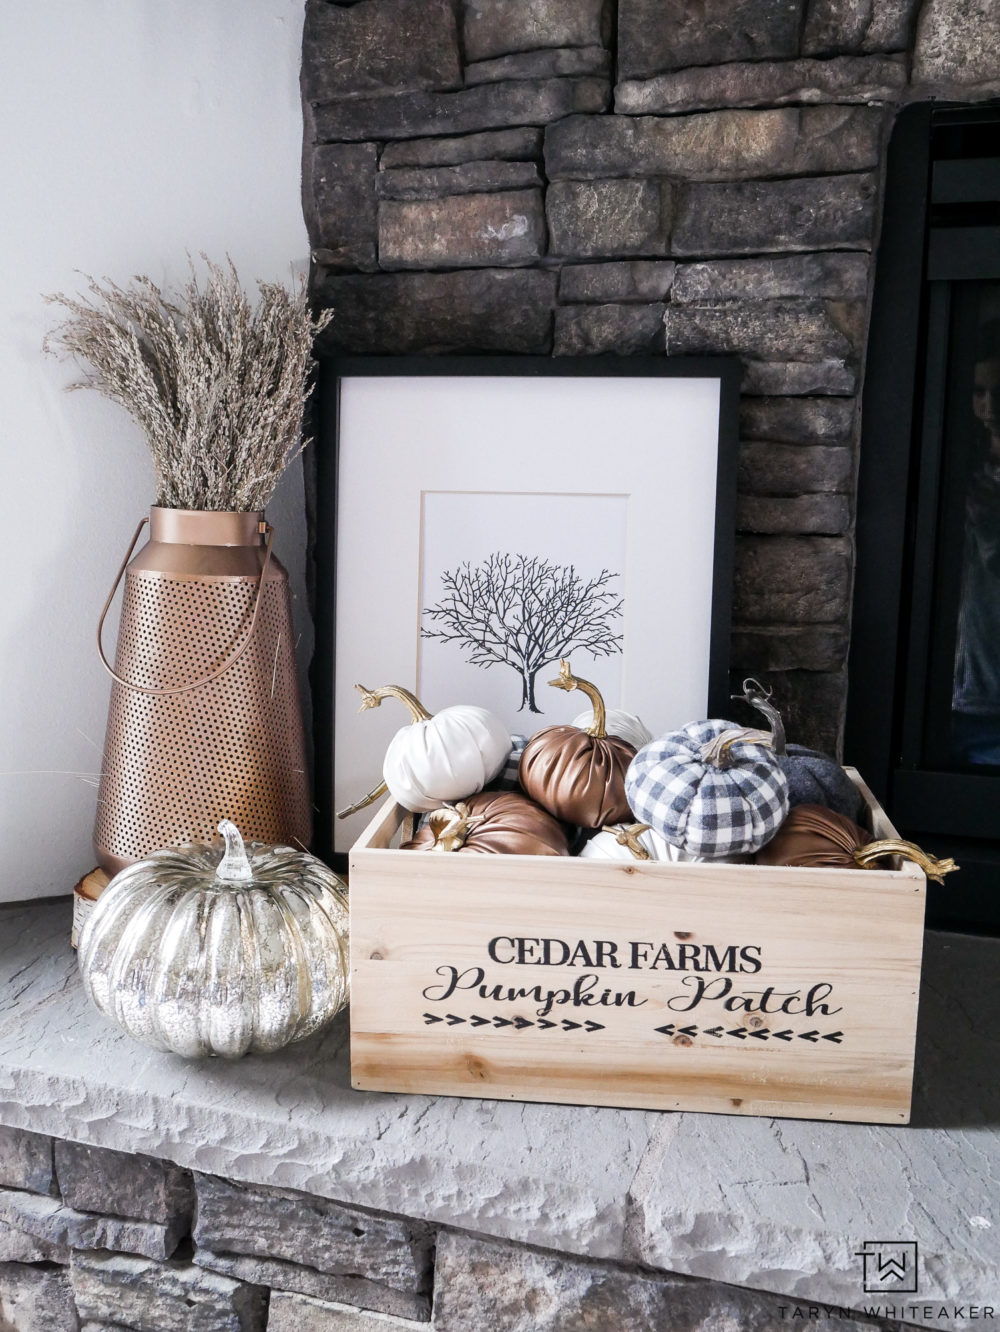 You can never have too many pumpkins! Fill a fall inspired box with tons of little pumpkins in various colors and textures to add a big splash of fall to your decor.